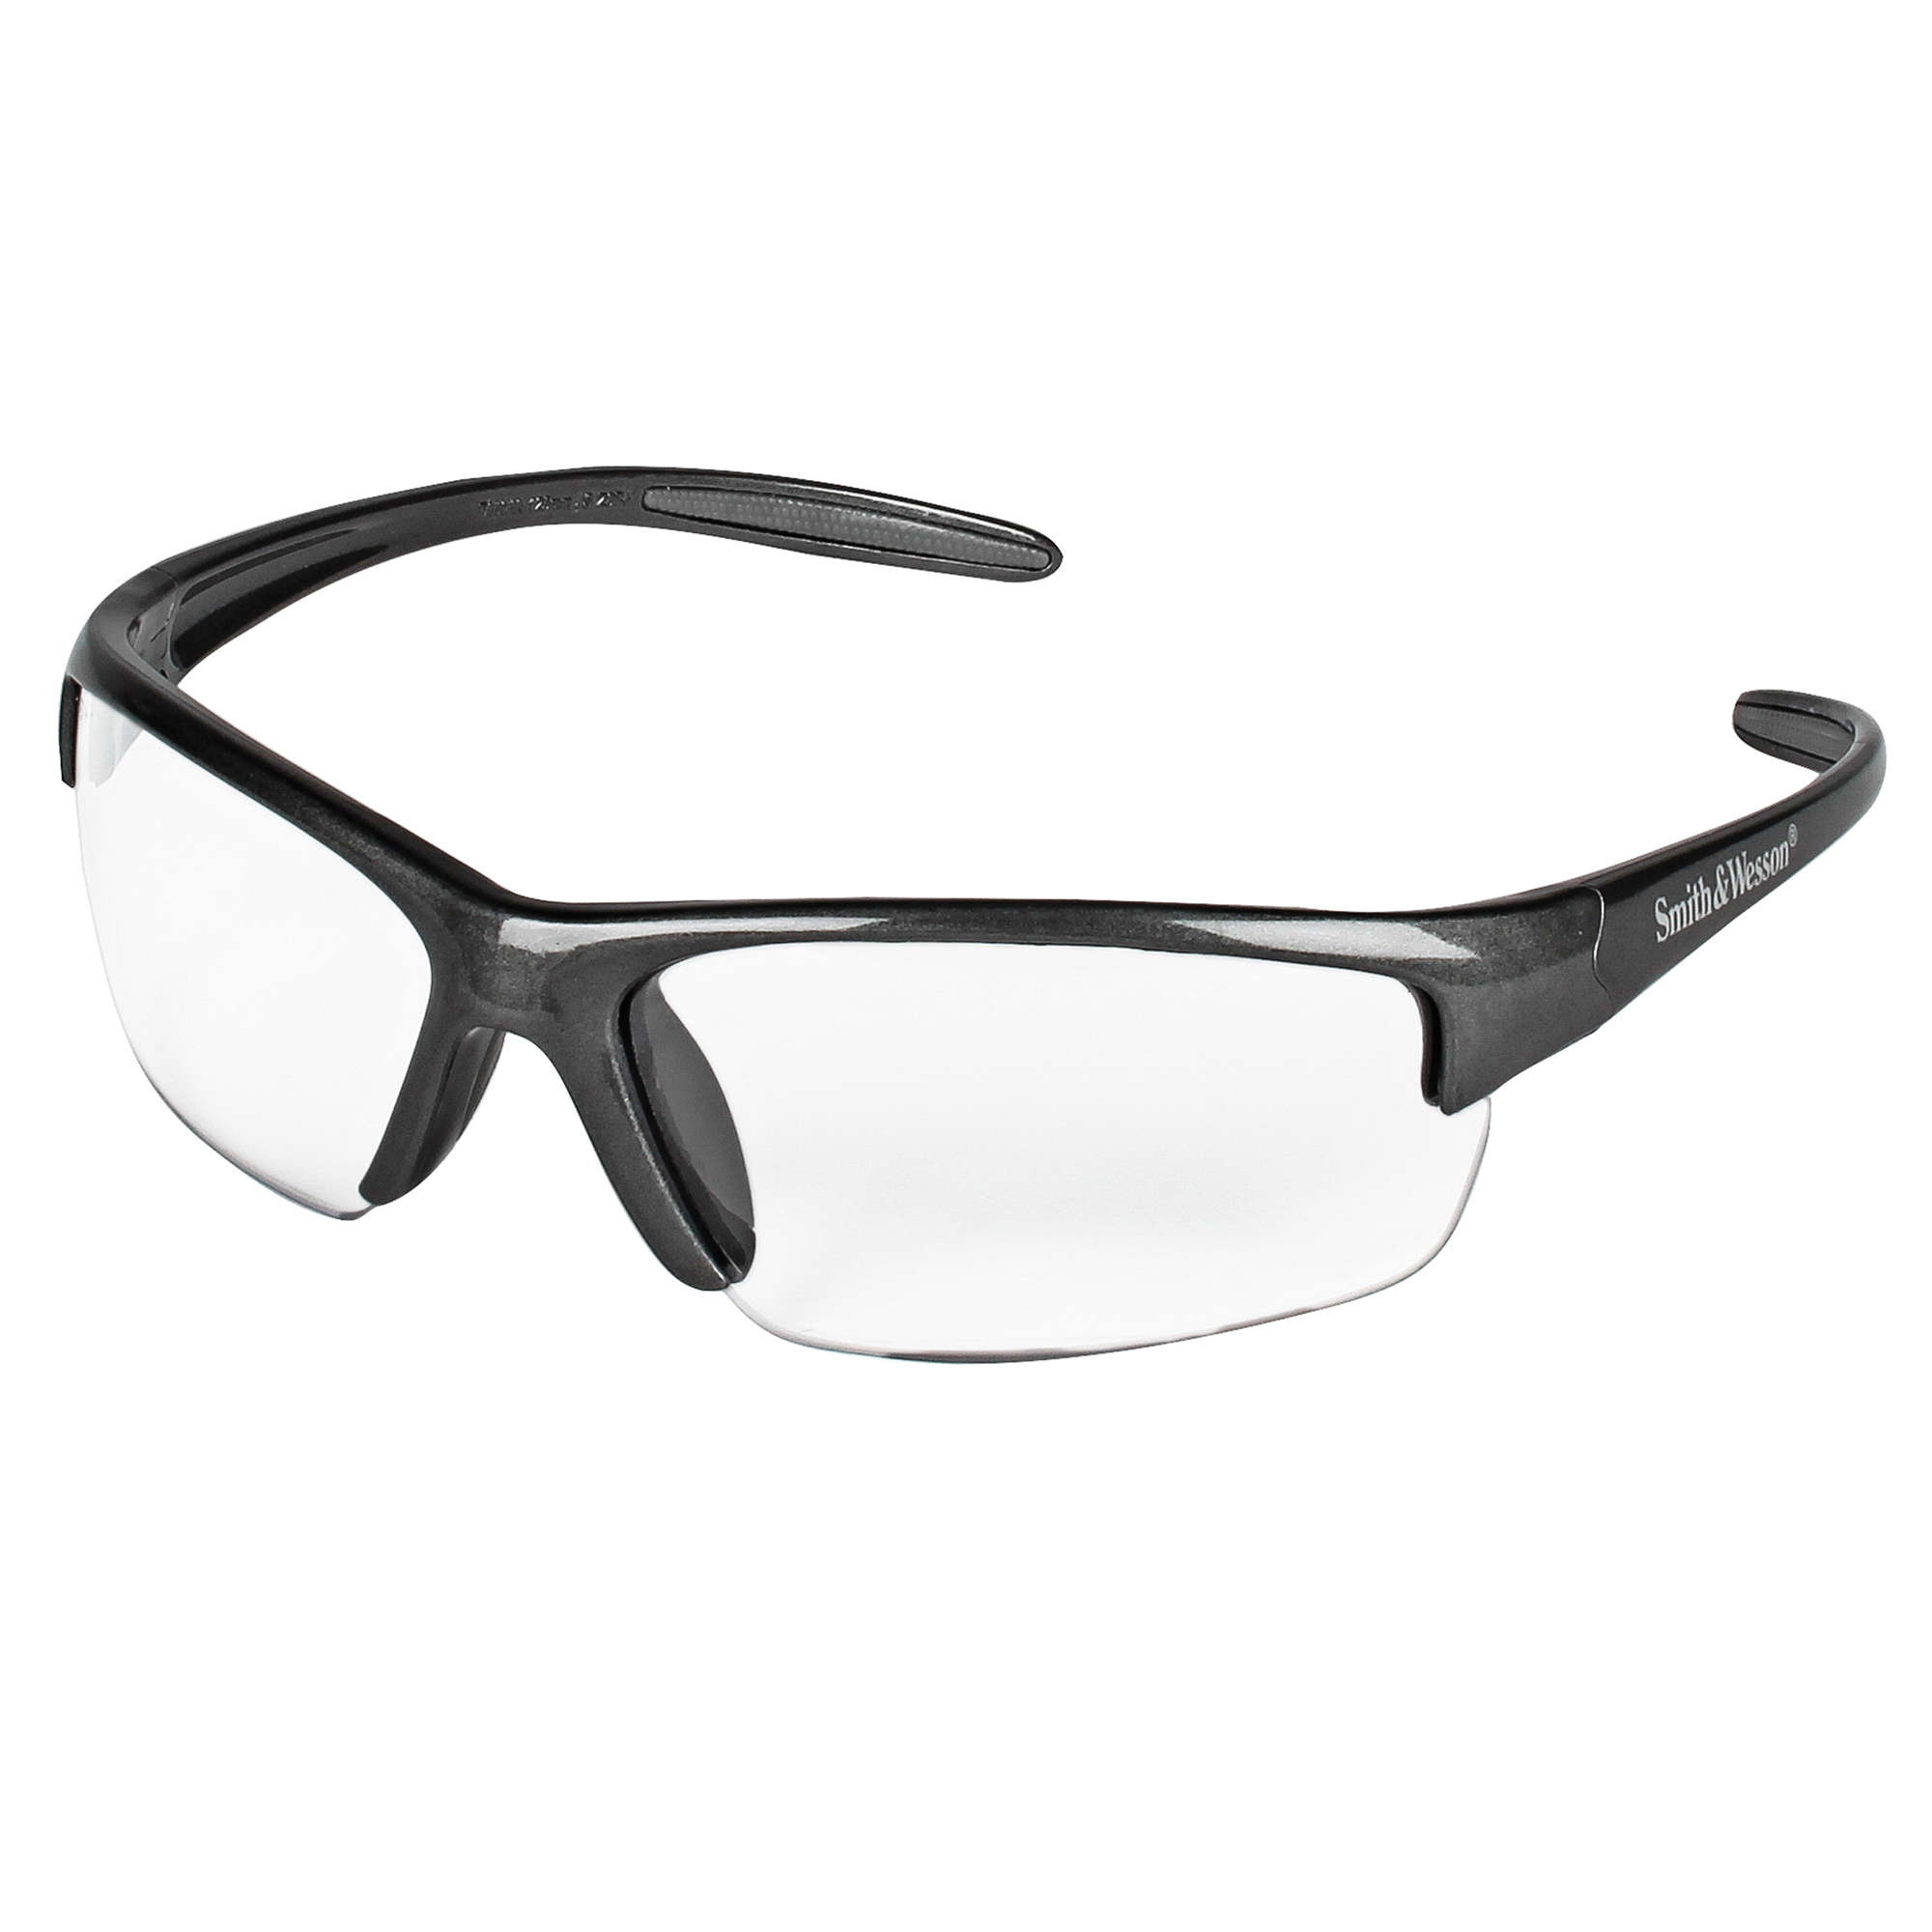 Kimberly Clark* Smith & Wesson® 20337 Magnum® 3G Mini Safety Glasses, Hard Coated, Gold Mirror Lens, Wrap Around Frame, Black, Polycarbonate Lens, ANSI Z87.1+2010, TAA Compliant